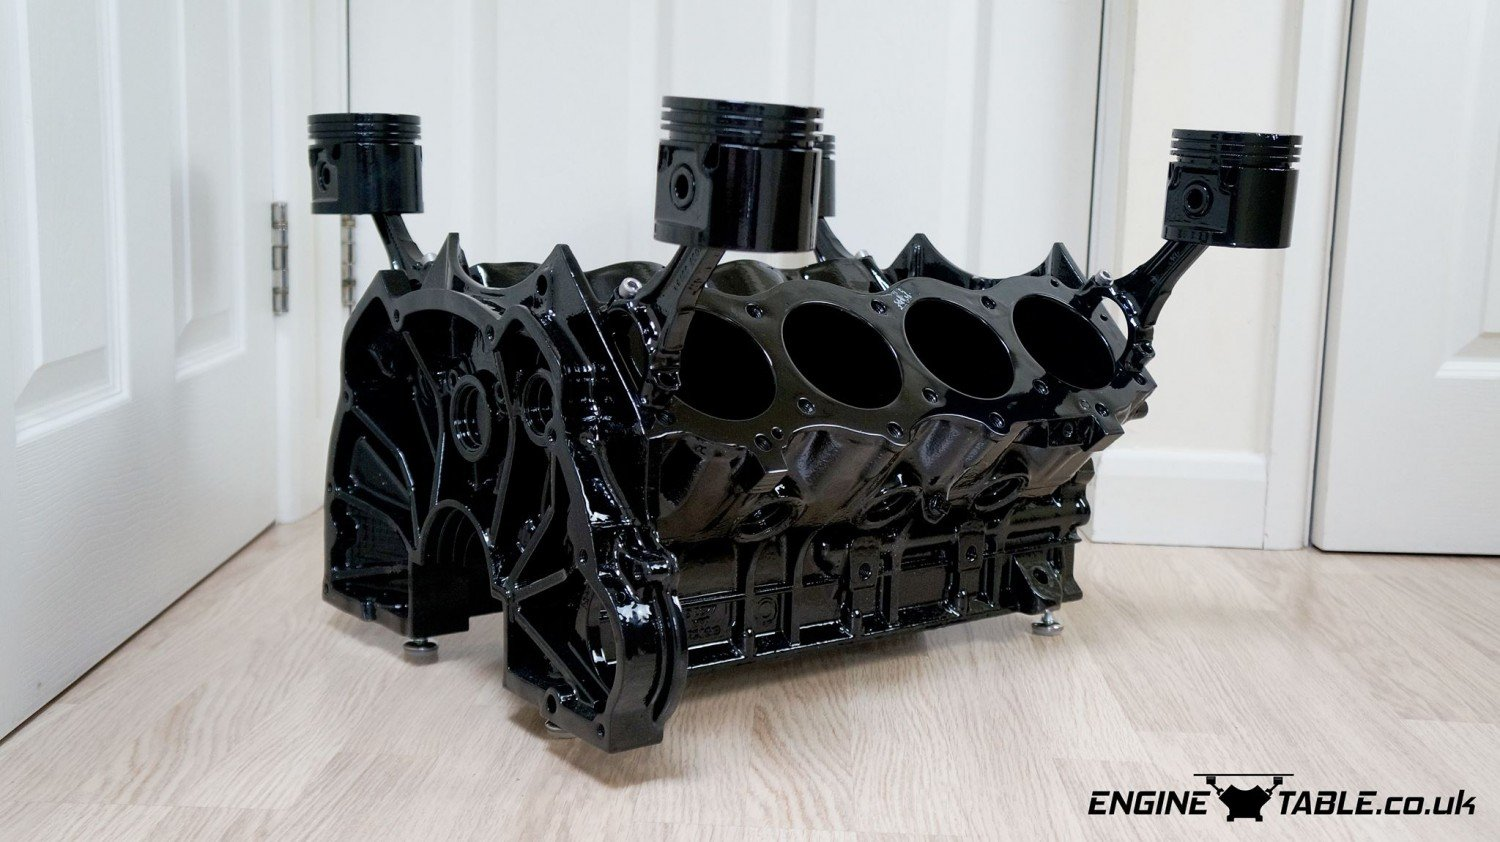 v8 engine coffee table for sale scrapiture rover v8 coffee tables porsche 928 s2 v8 engine. Black Bedroom Furniture Sets. Home Design Ideas